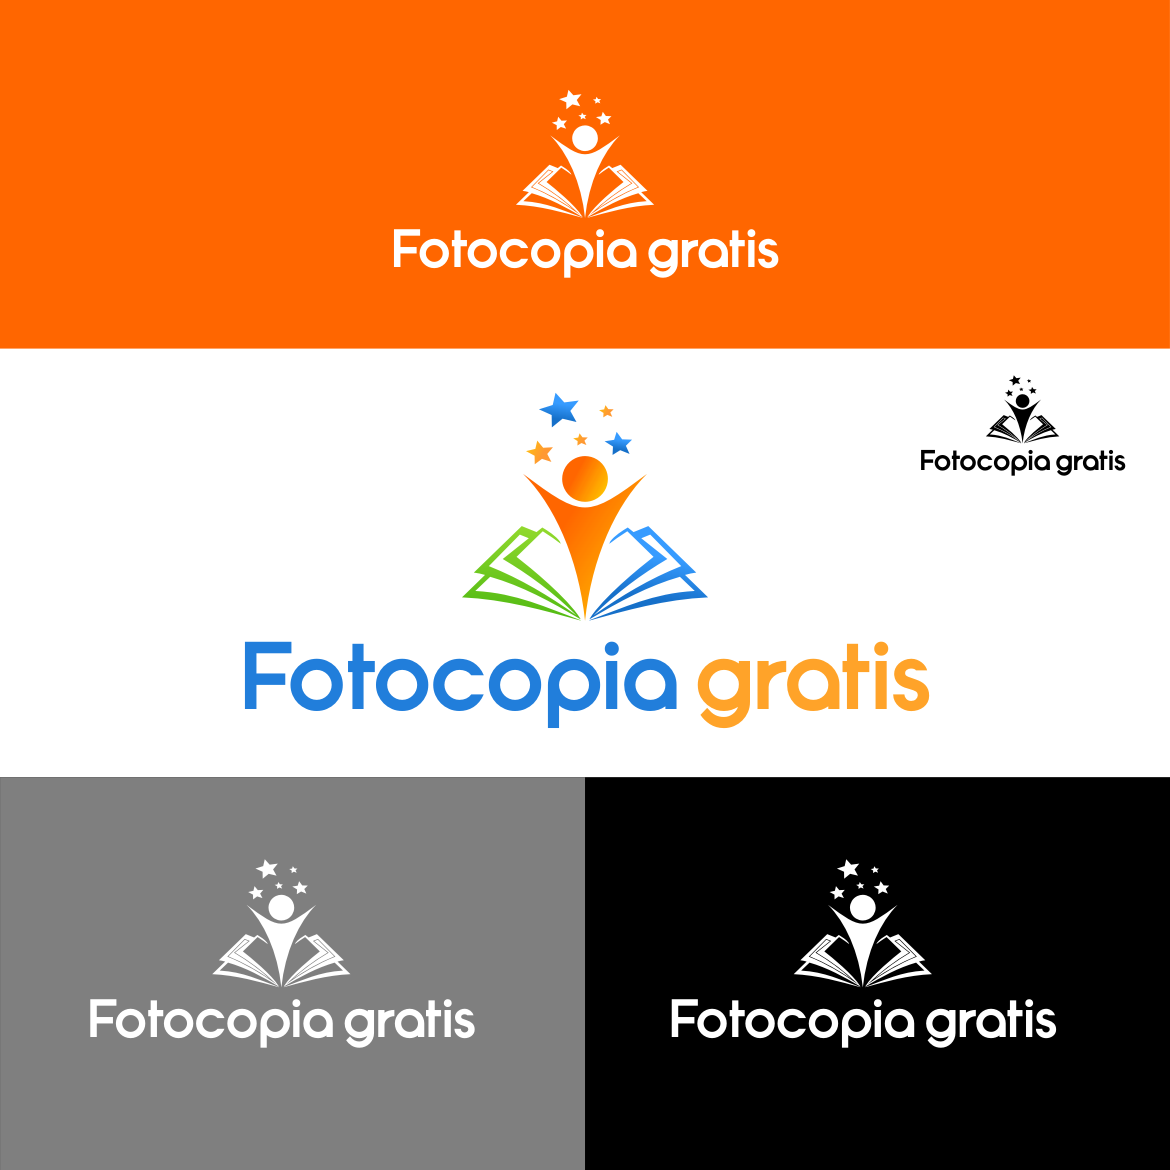 Logo Design by rifatz - Entry No. 98 in the Logo Design Contest Inspiring Logo Design for Fotocopiagratis.